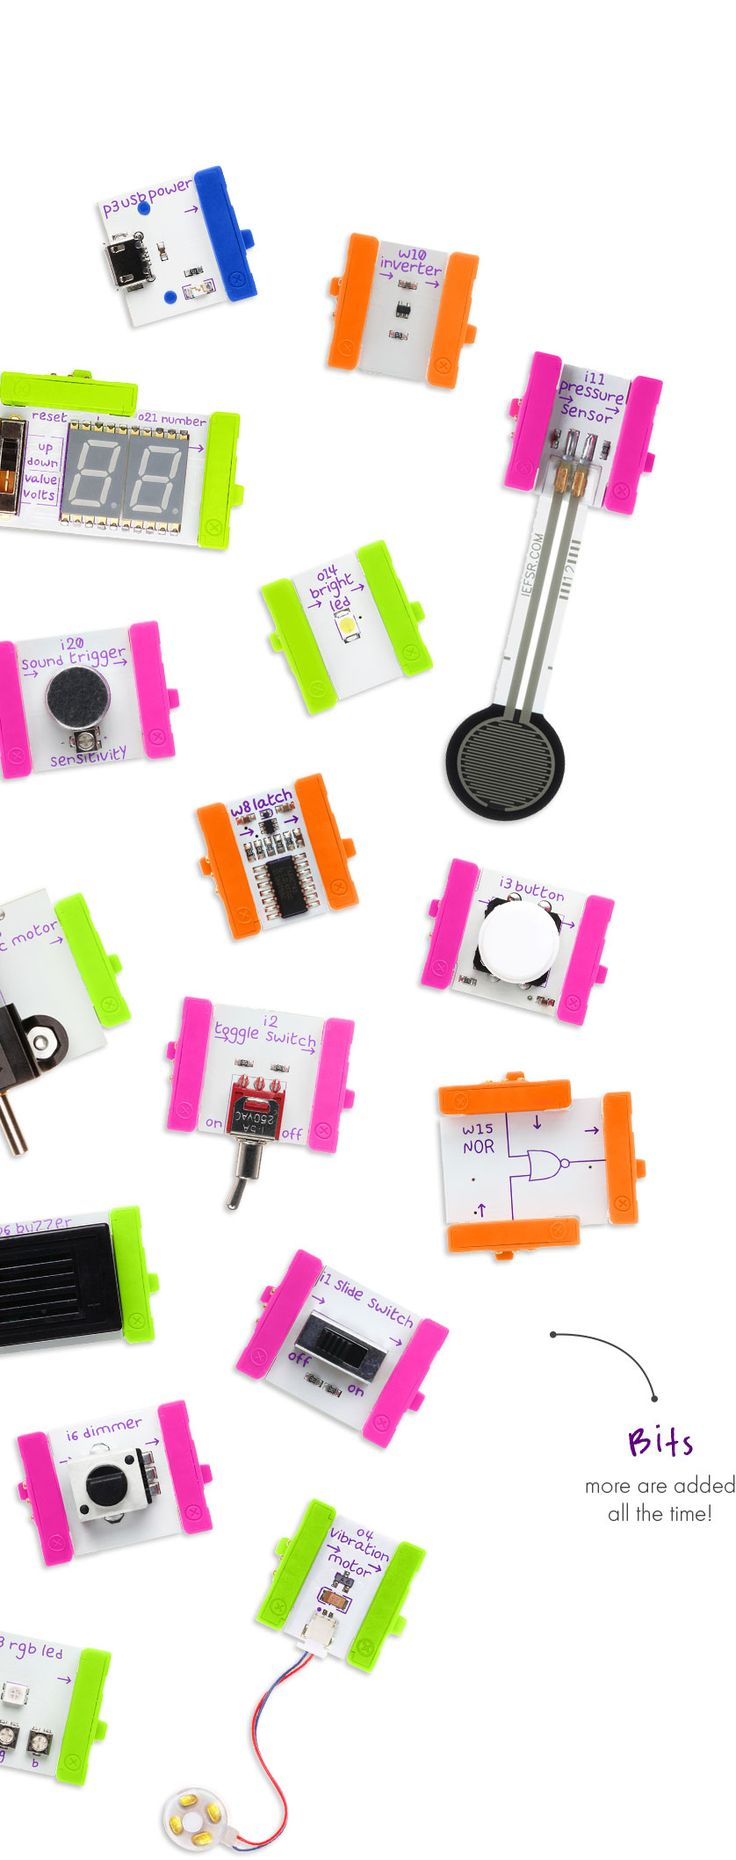 For the people who want to realize a kinetic/electronic/sensor project but have now previous experience in this field: LittleBits ... go and visit the website.